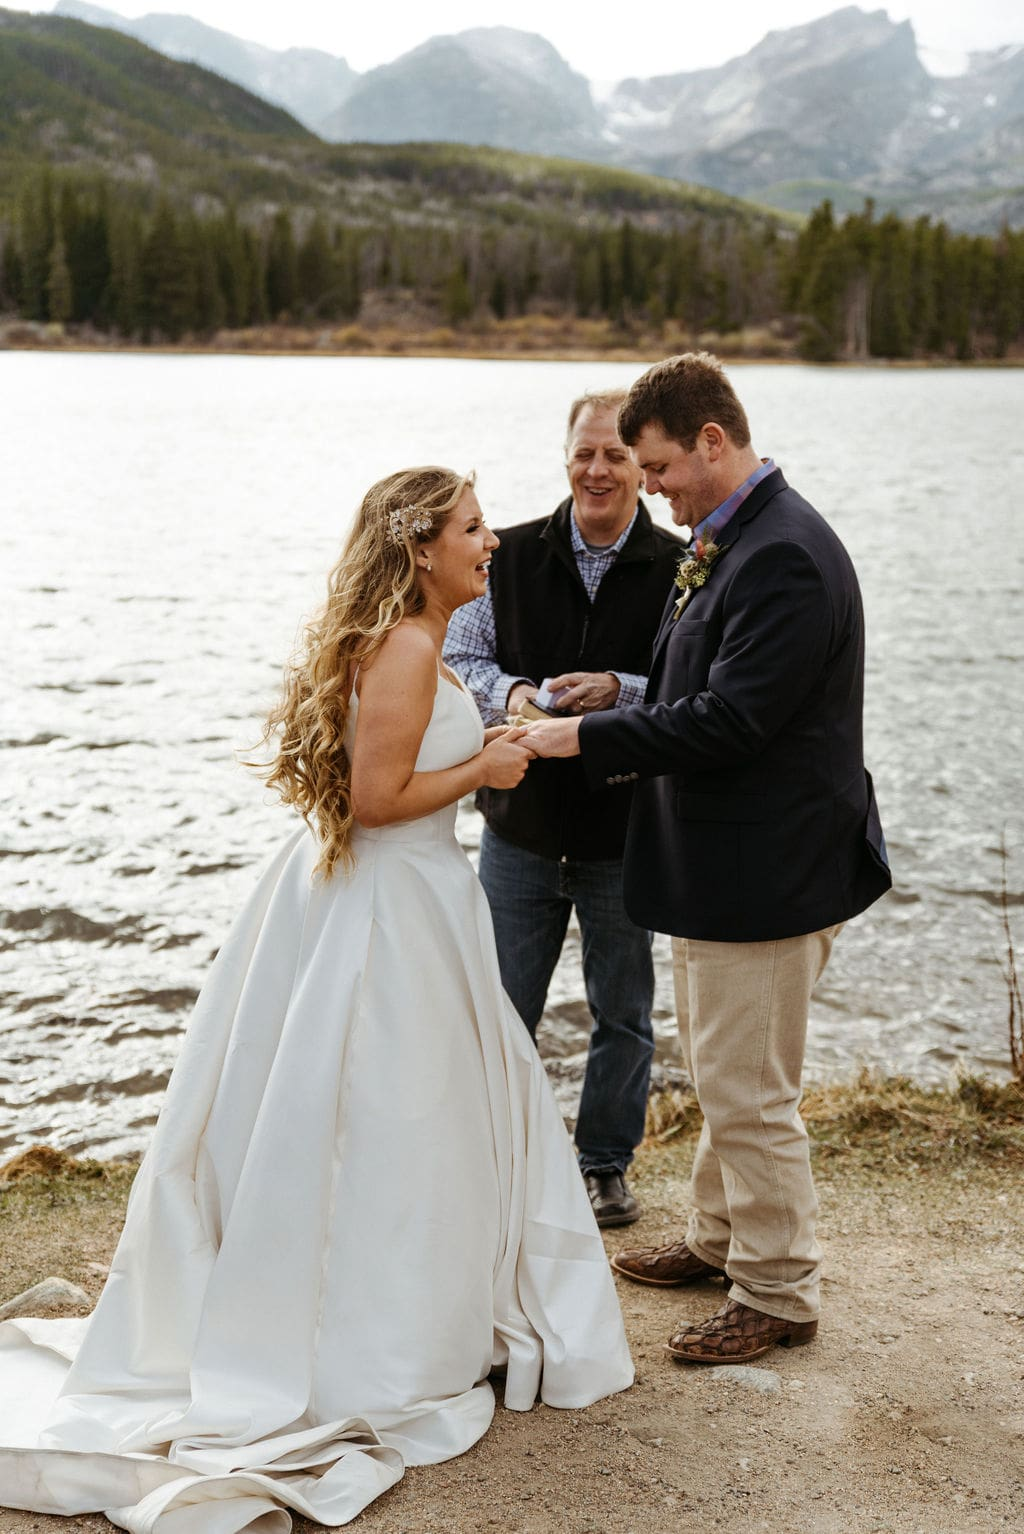 Bride and groom exchange rings at their sprague lake elopement